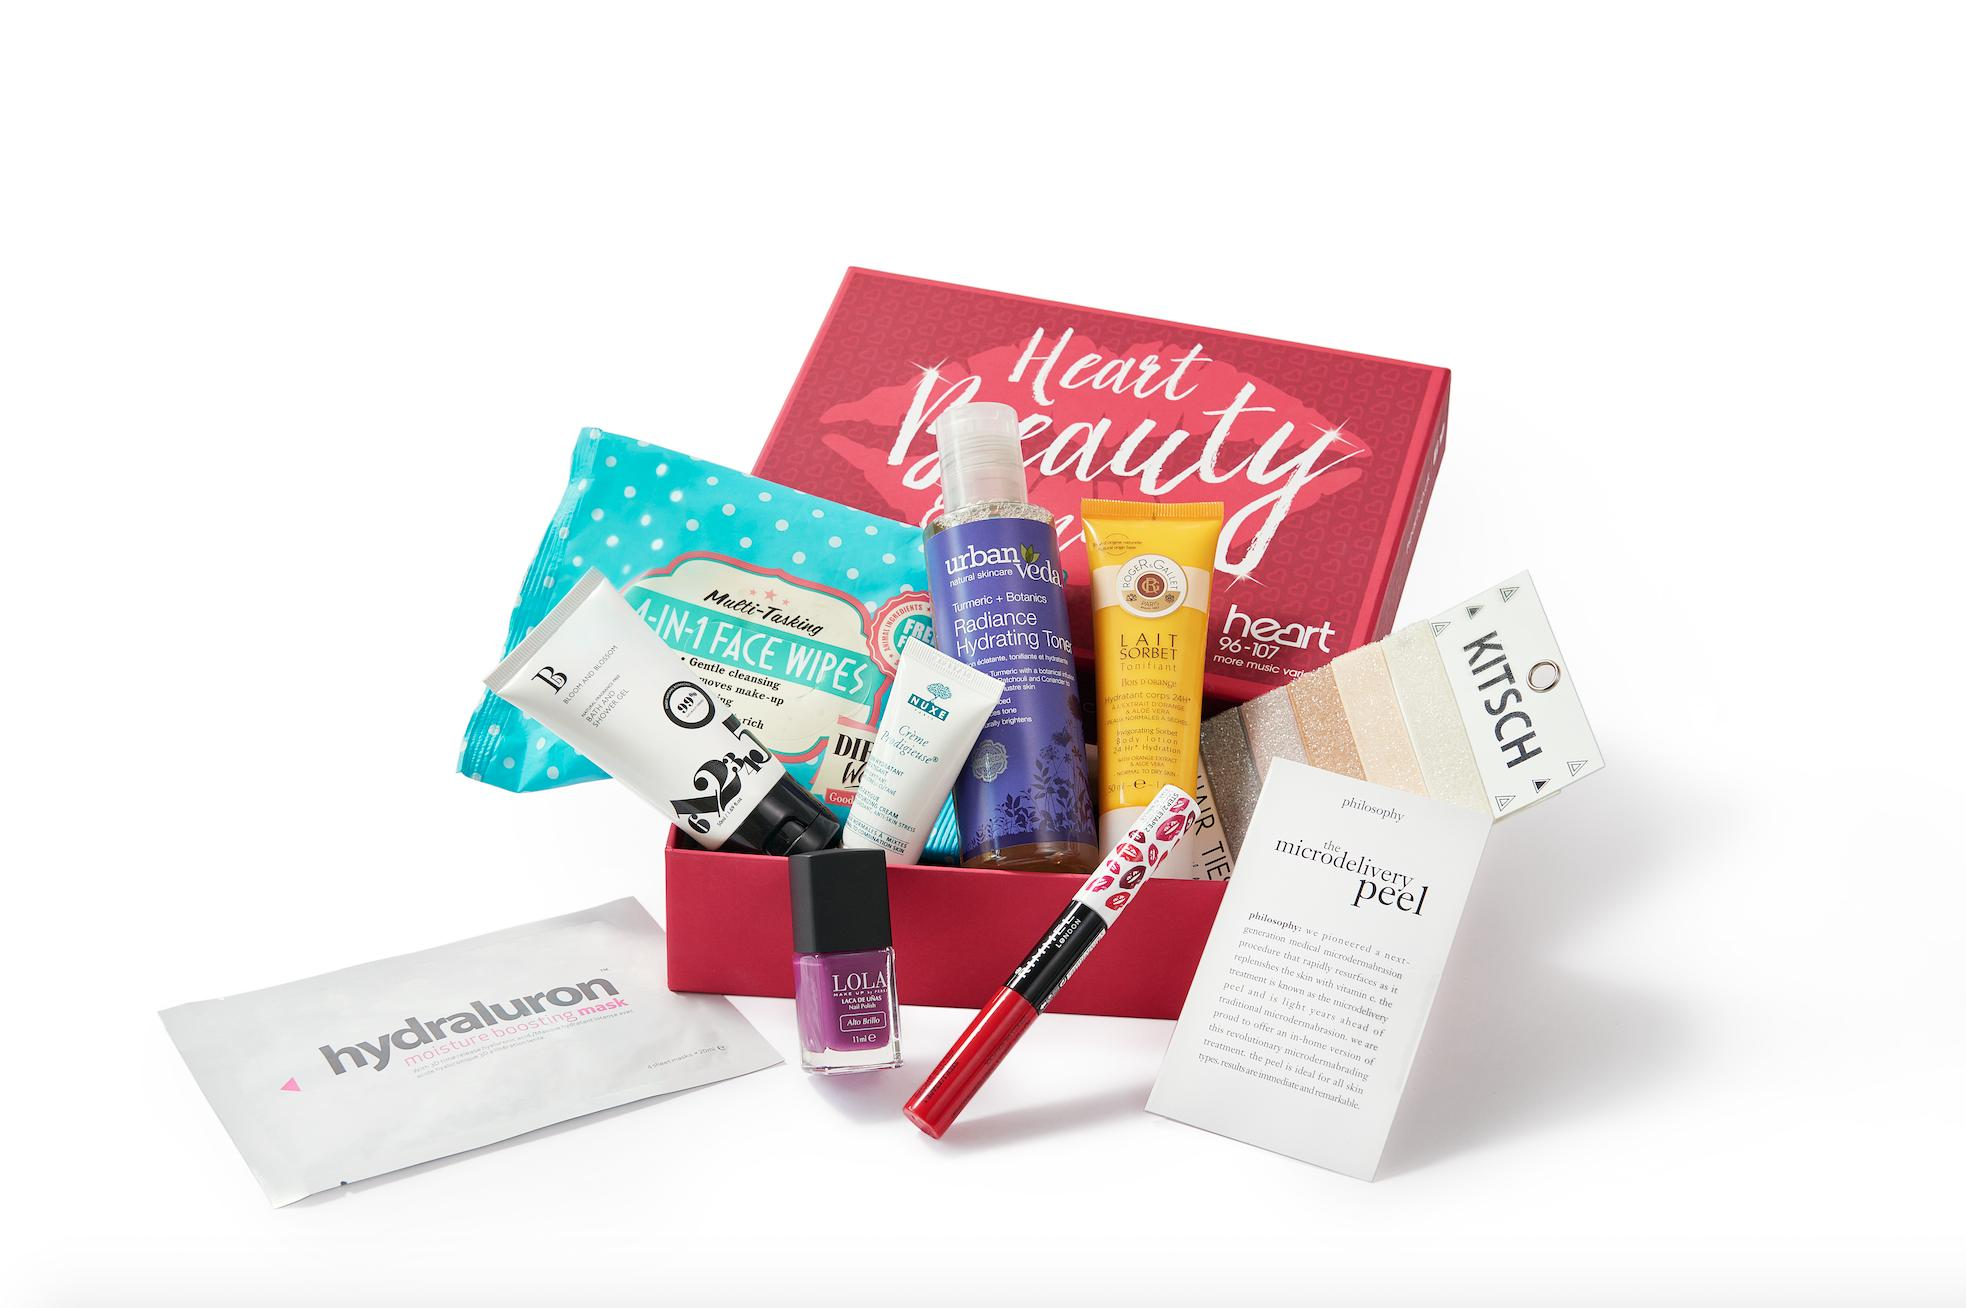 heart beauty box